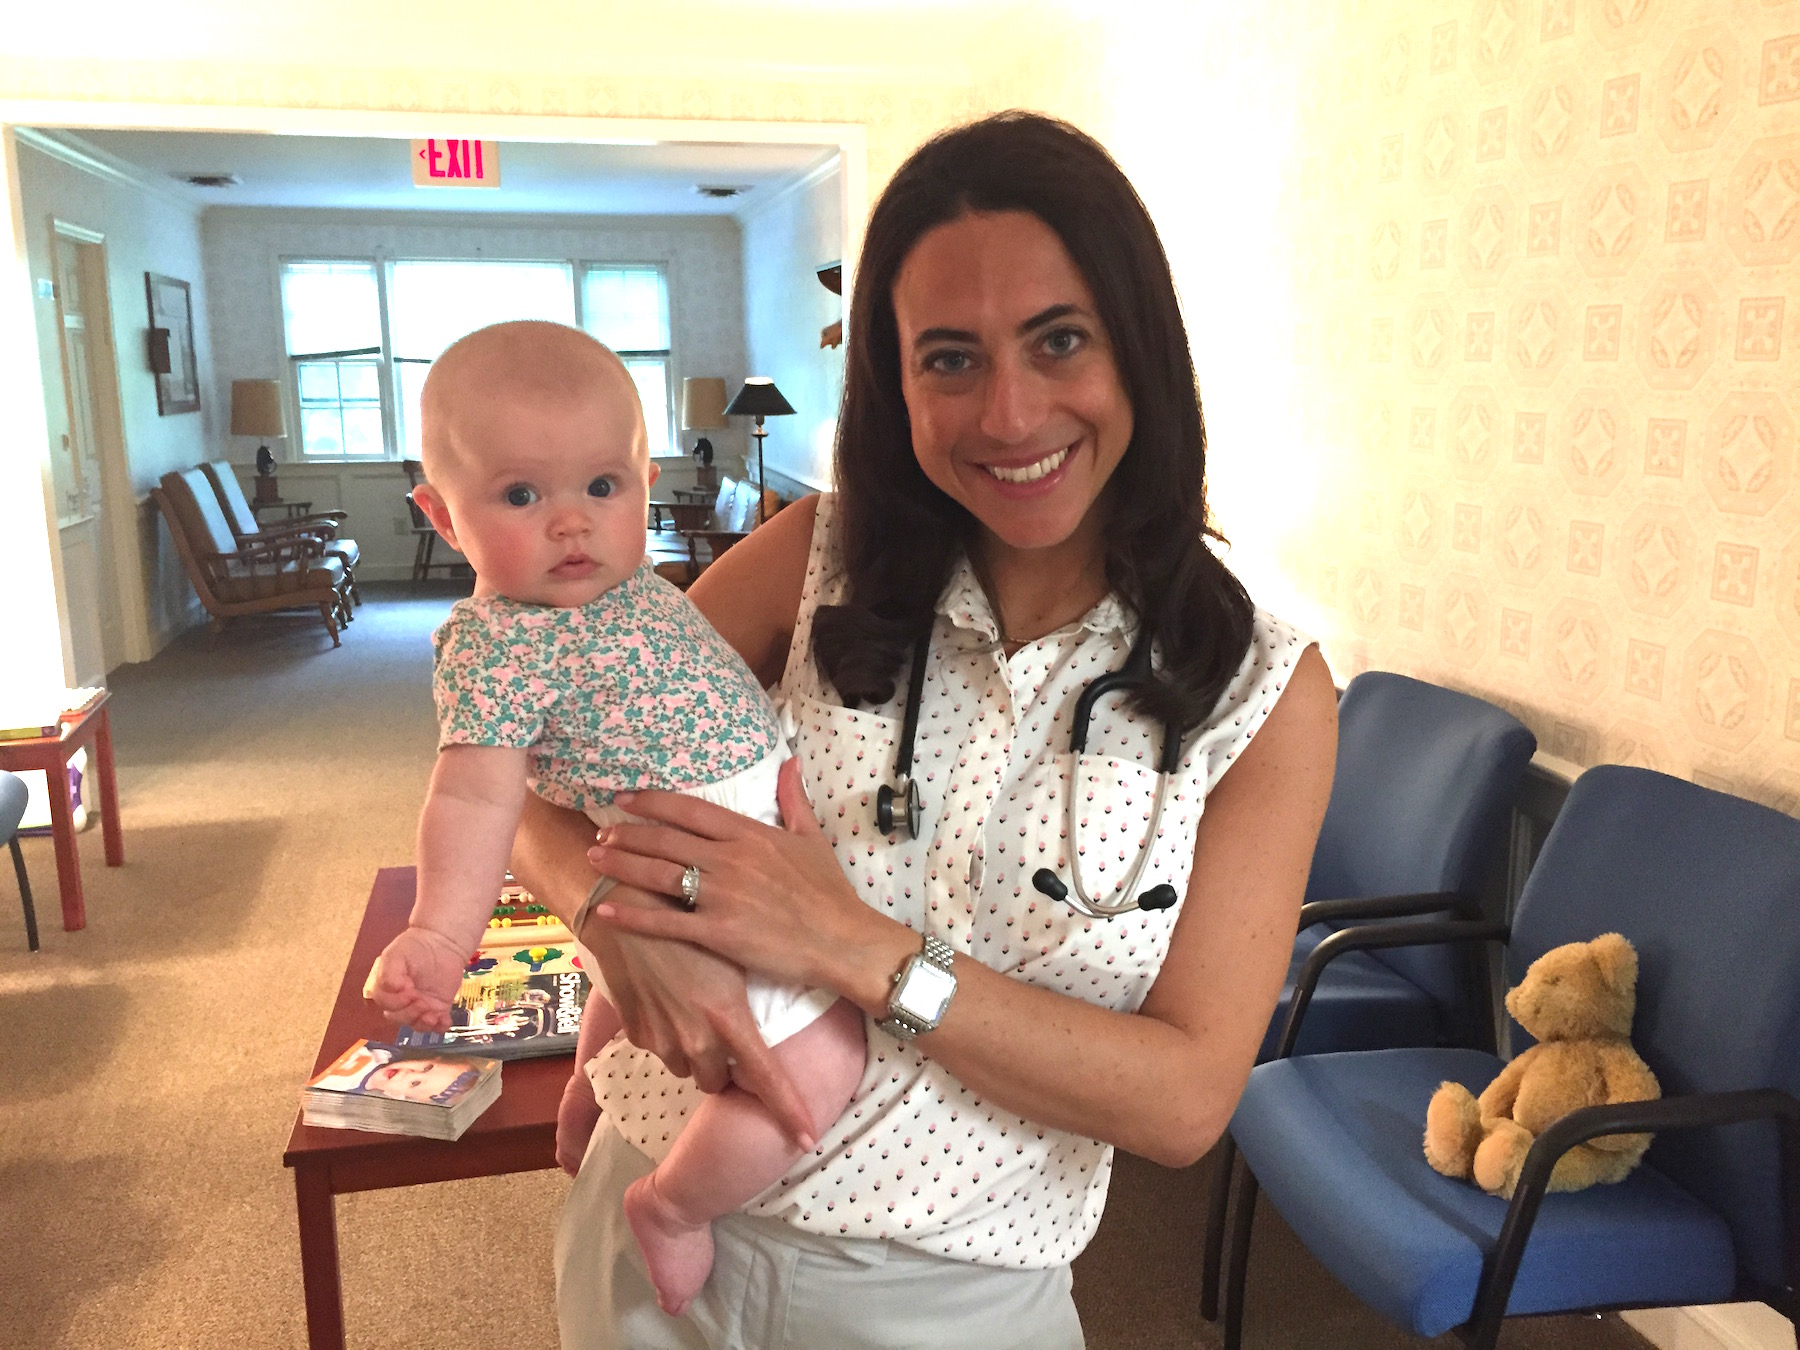 Dr. Nicole A. Panza holds a patient in the office of Pediatric Associates of Westfield, NJ.